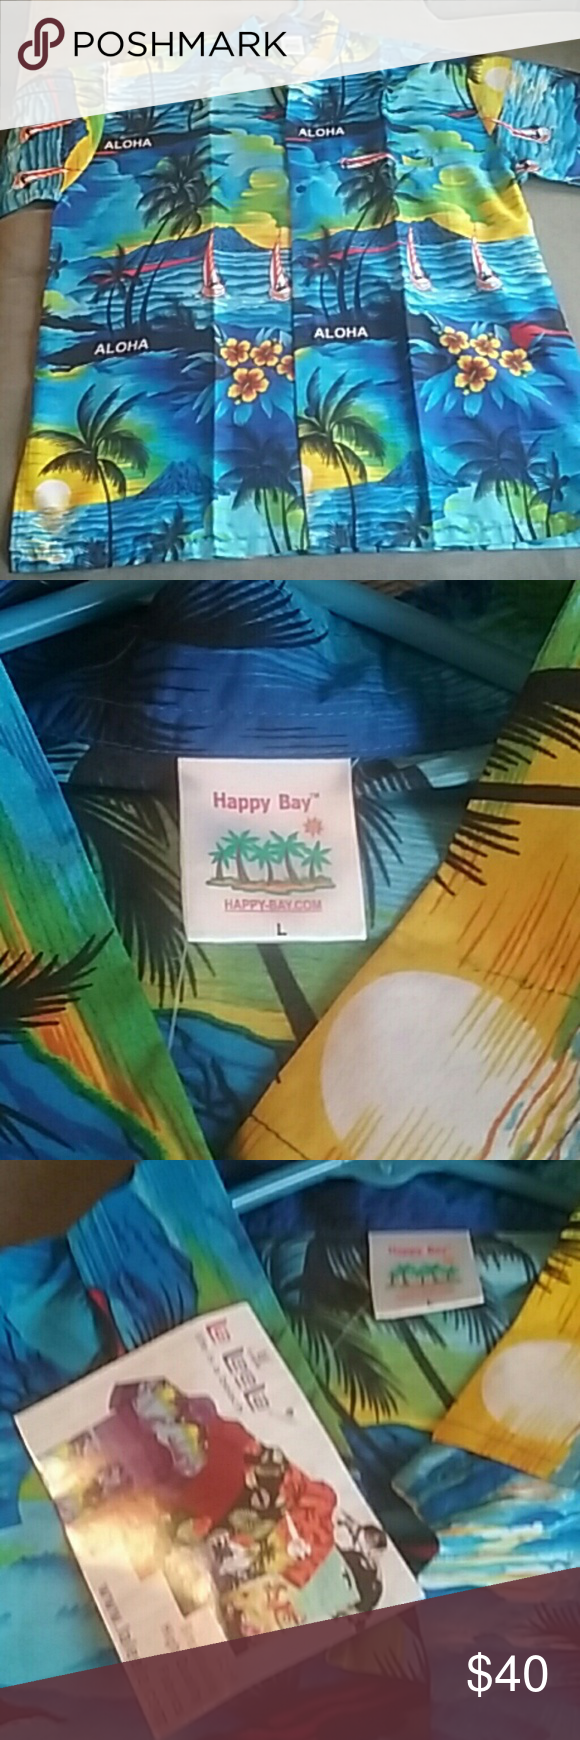 5c13c8fc Men's L nwt happy Bay shirt 100% Terivoile New with tags men's large  tropical Hawaiian shirt made by Happy Bay 100% Terivoile has a silky feel  very bright ...